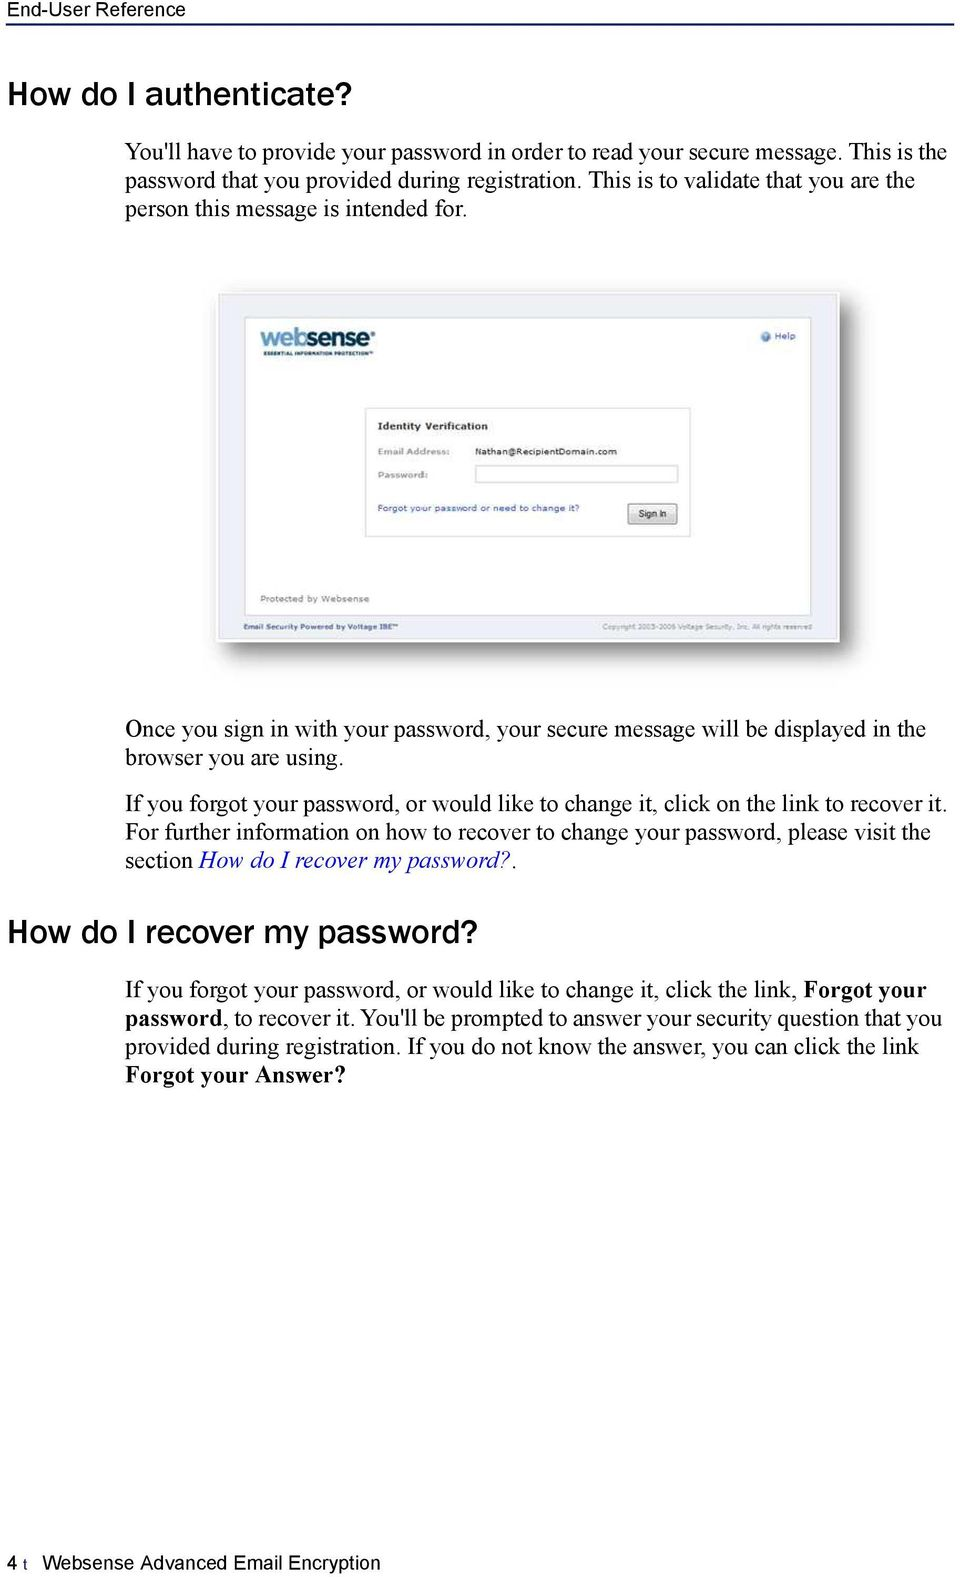 If you forgot your password, or would like to change it, click on the link to recover it.